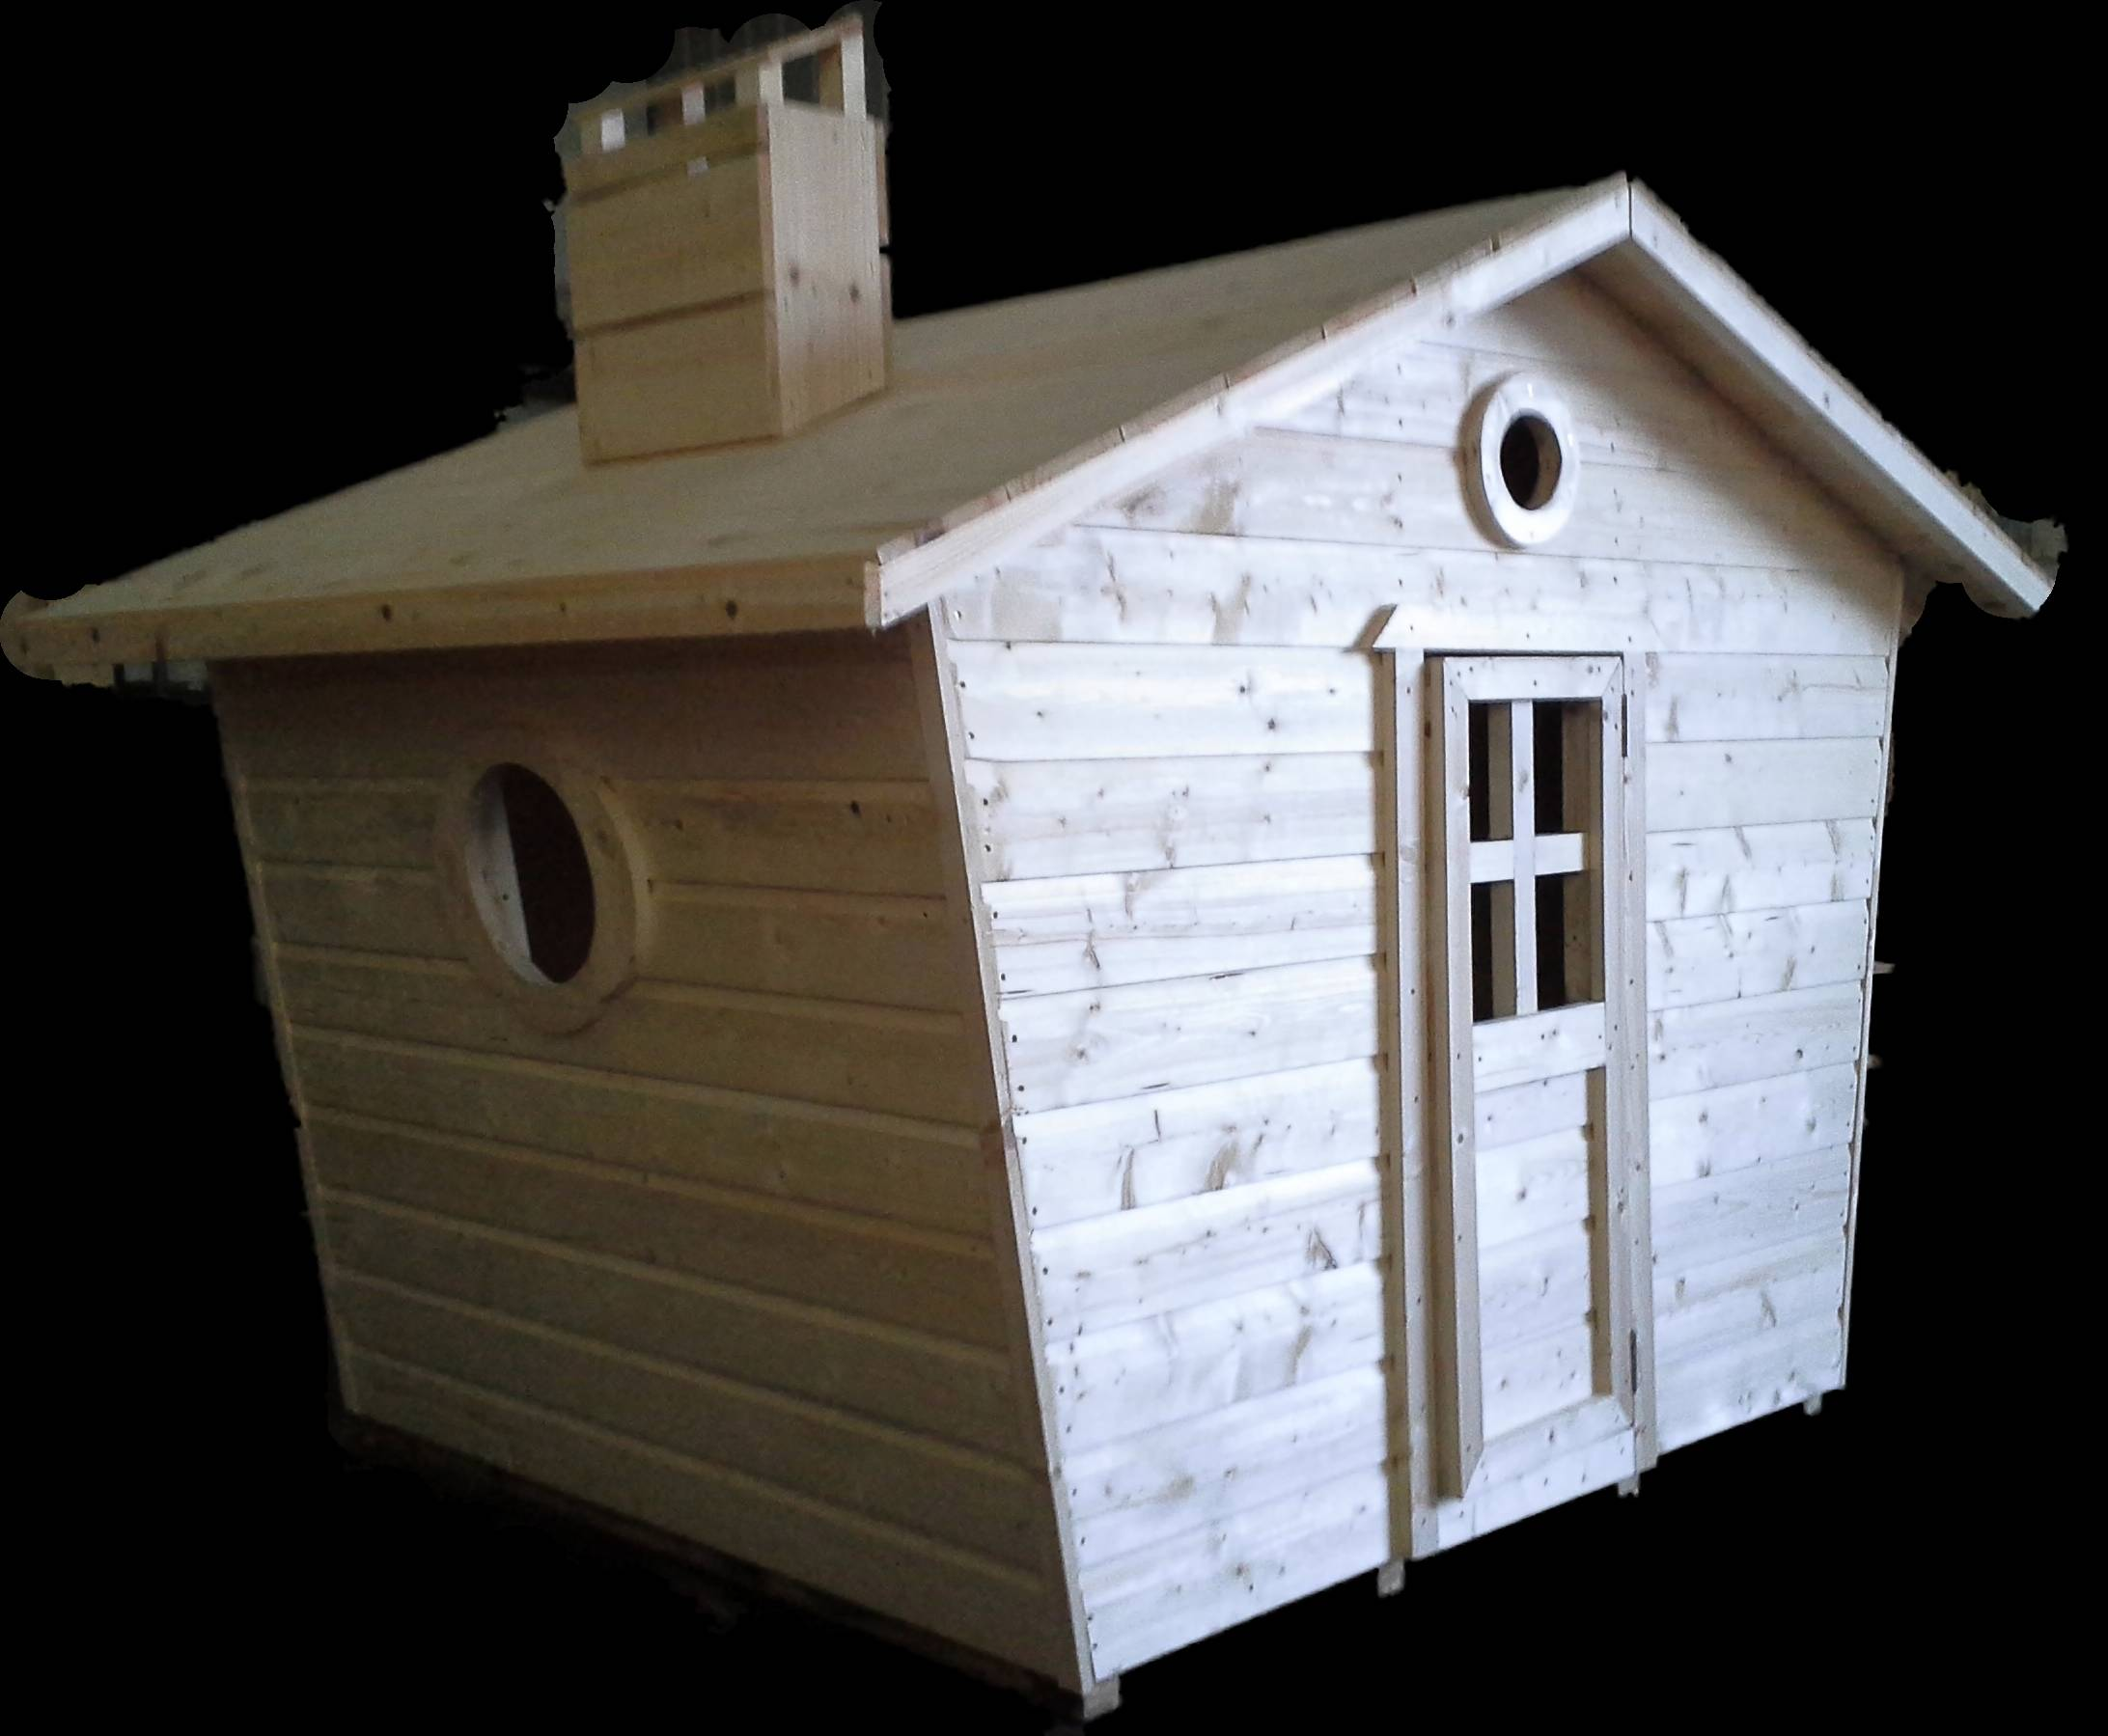 Fancy Wooden Playhouse (5' x 5')